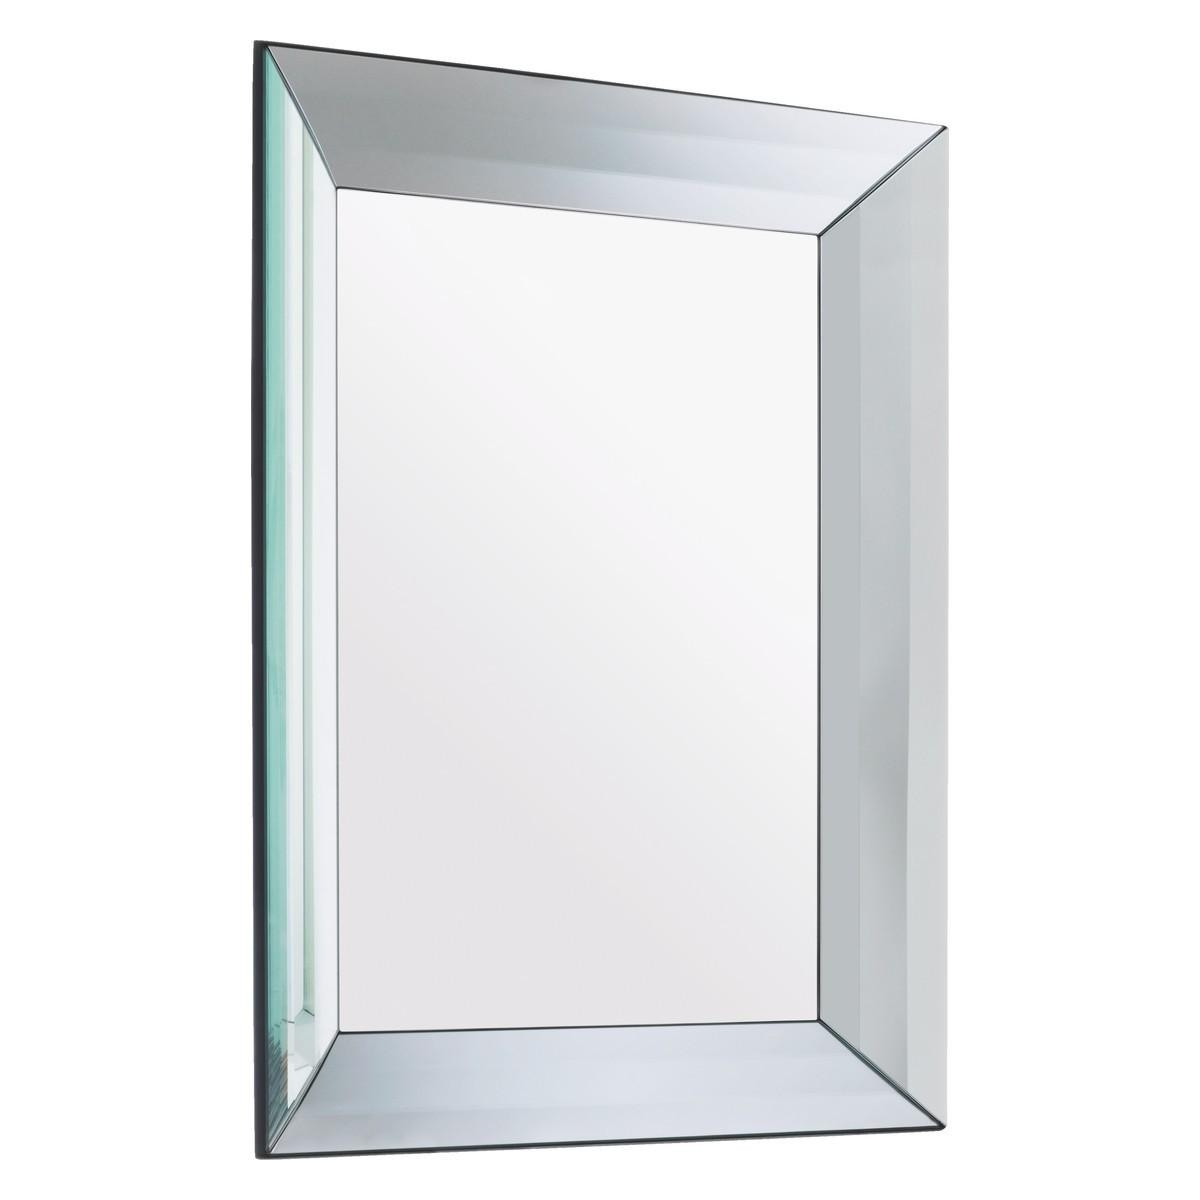 Luella 60 X 80Cm Rectangular Bevelled Wall Mirror | Buy Now At Intended For Square Bevelled Mirror (Image 12 of 20)